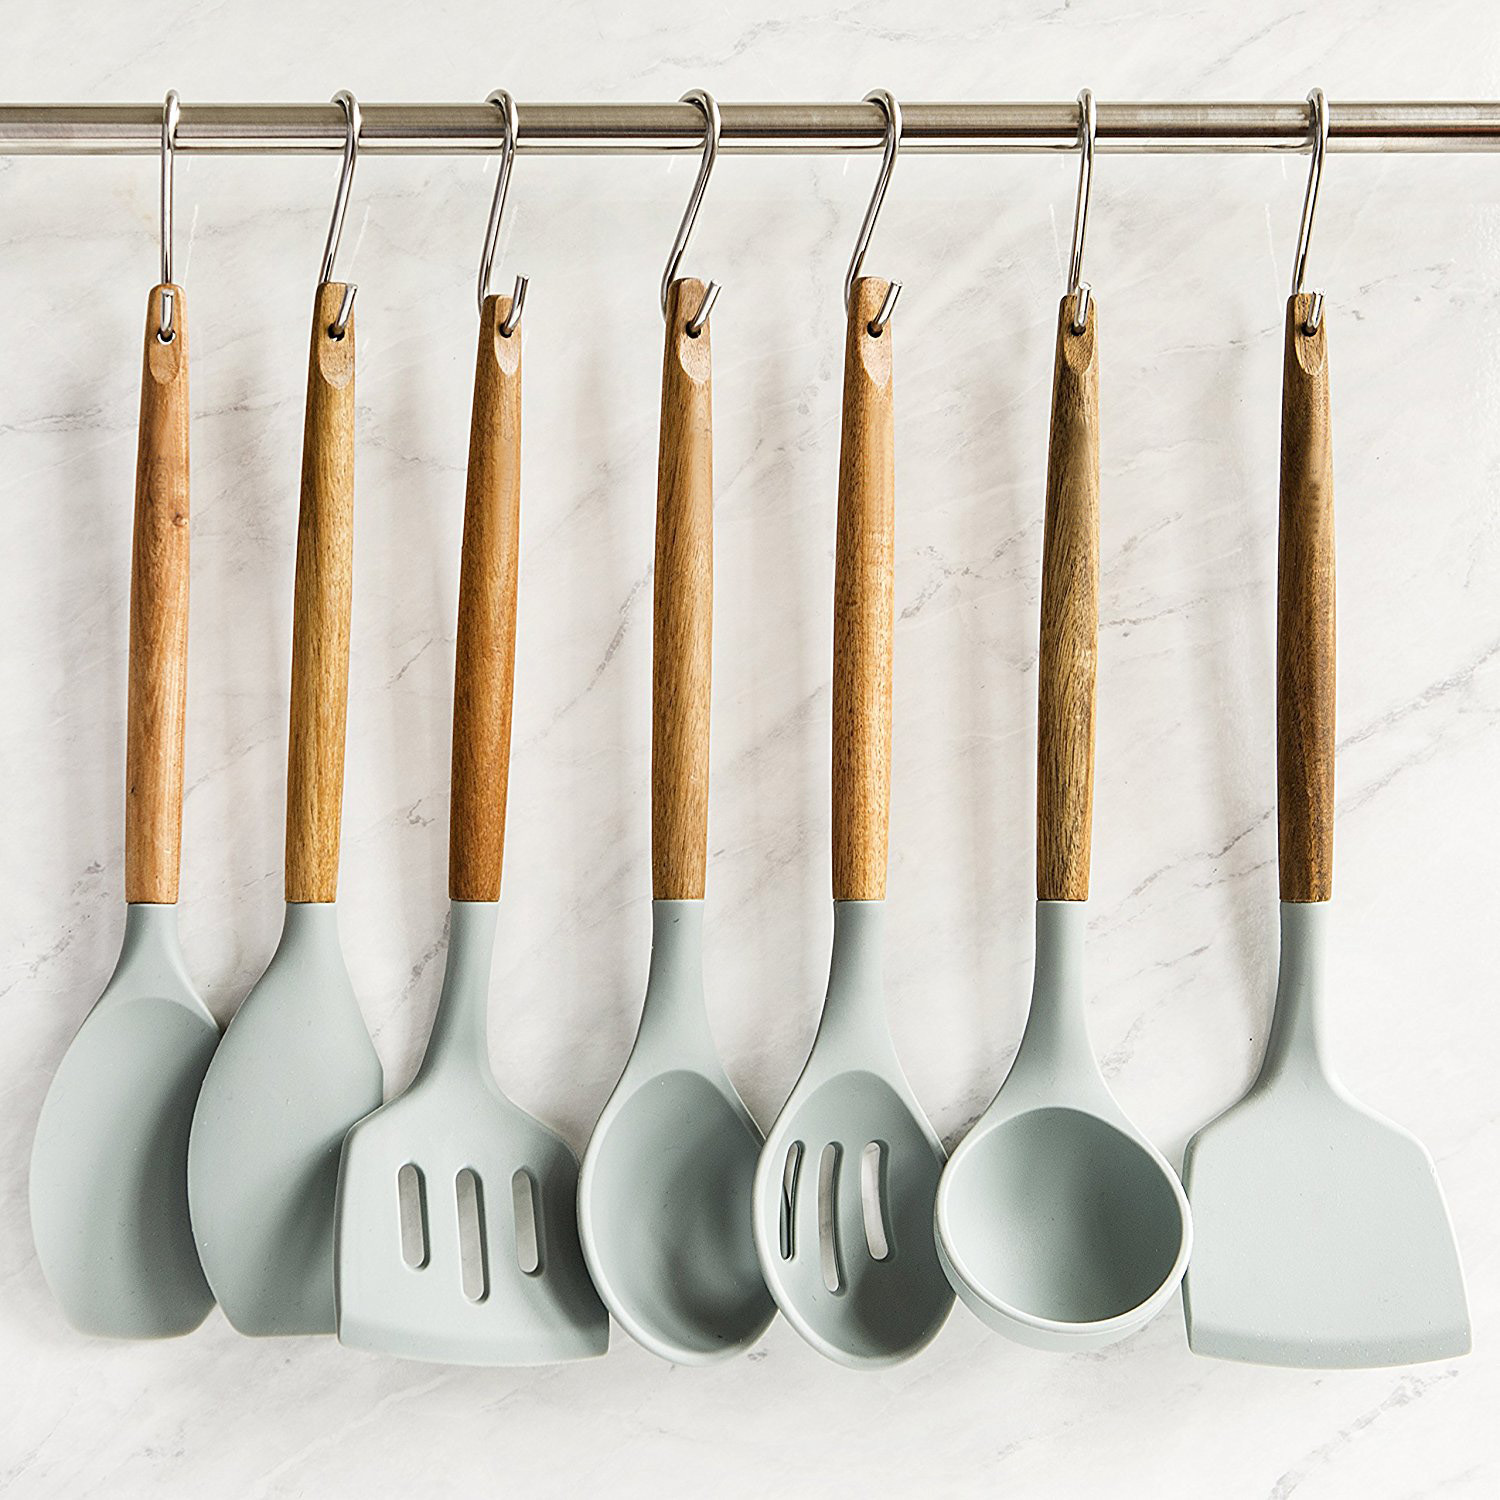 8 Natural Acacia Wooden Silicone Kitchen Utensils Set